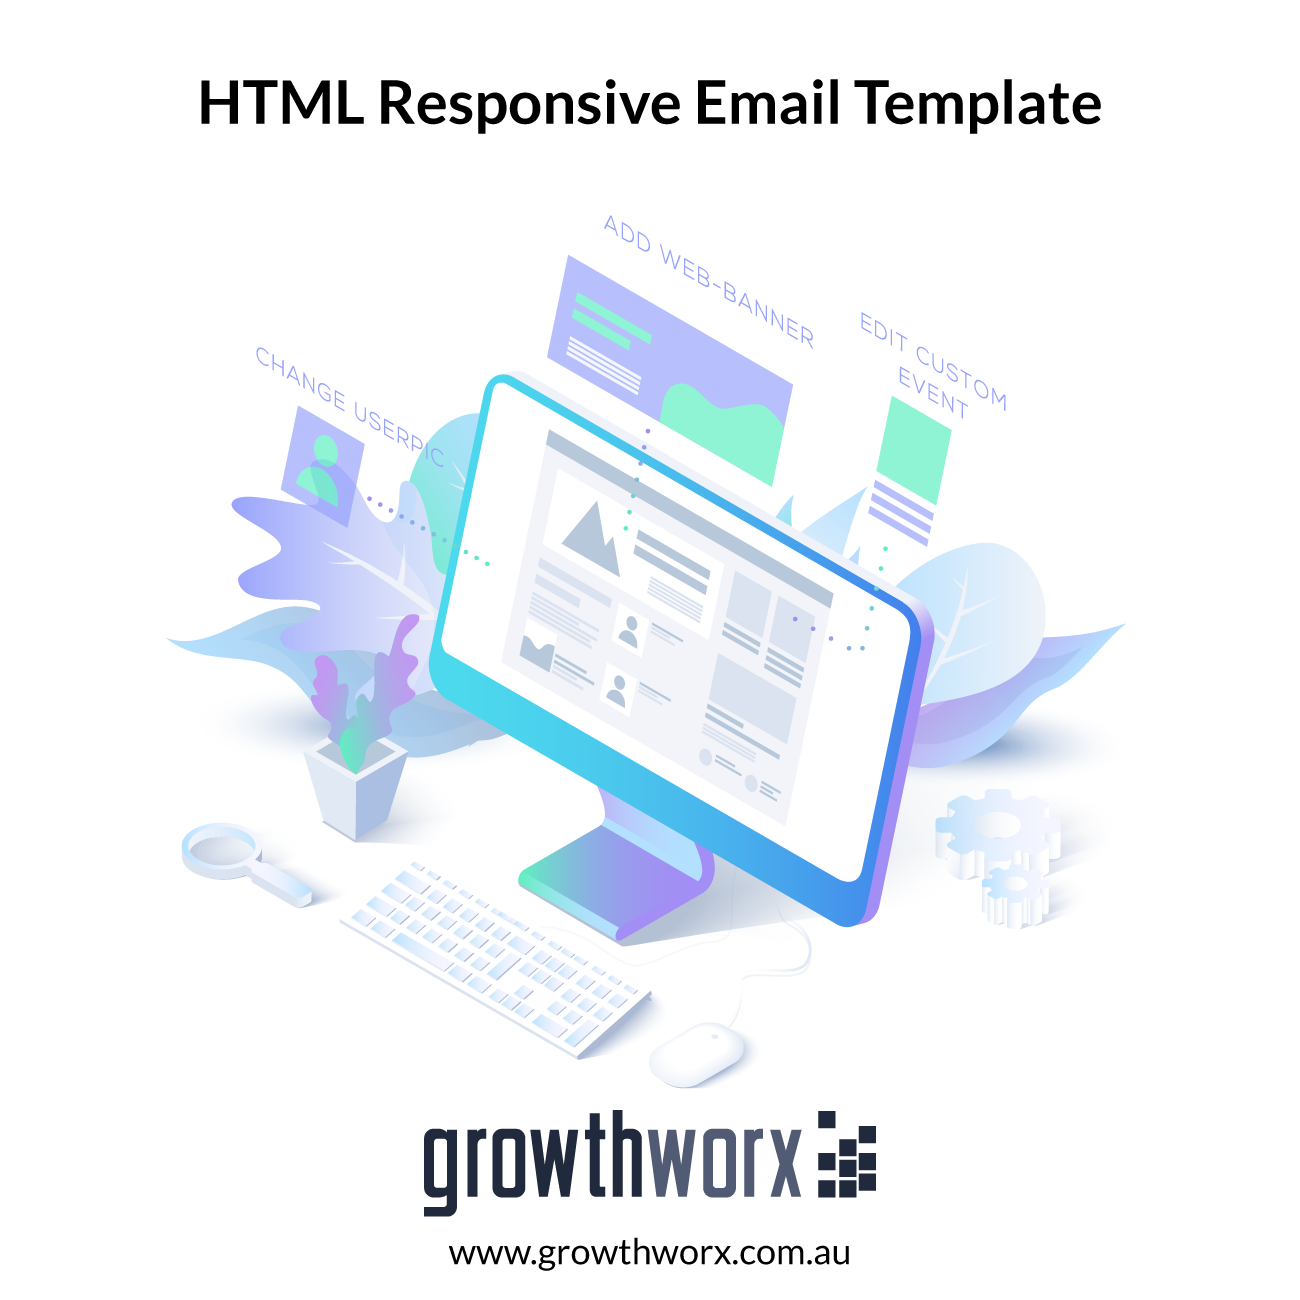 I will design and develop HTML responsive email template 1